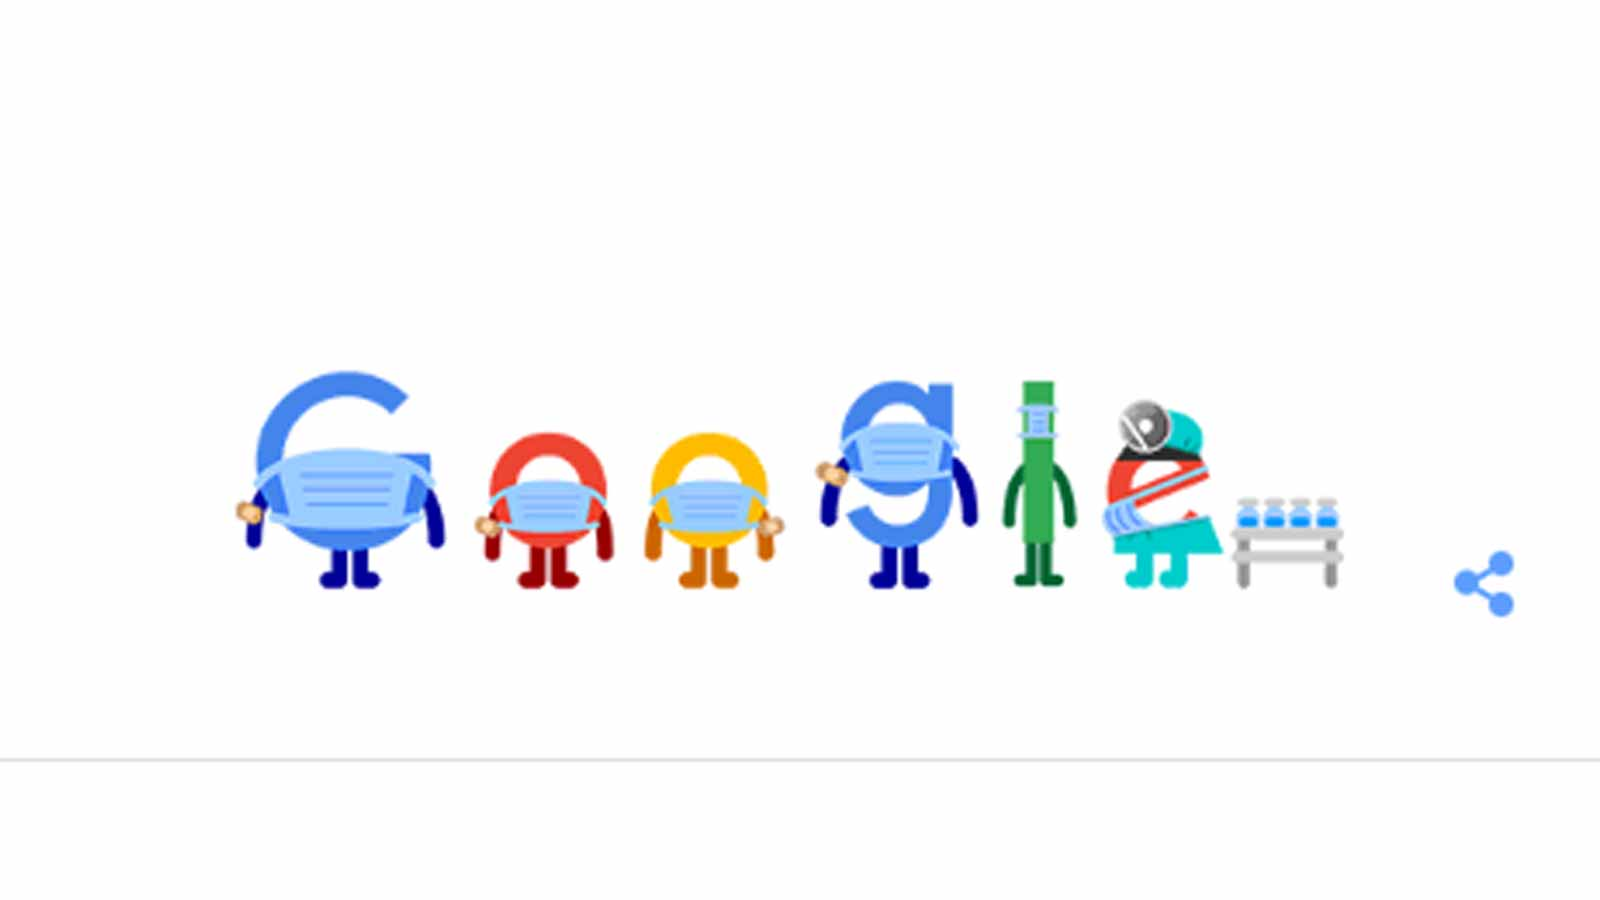 google-doodle-urges-people-to-get-vaccinated-wear-mask-and-save-lives